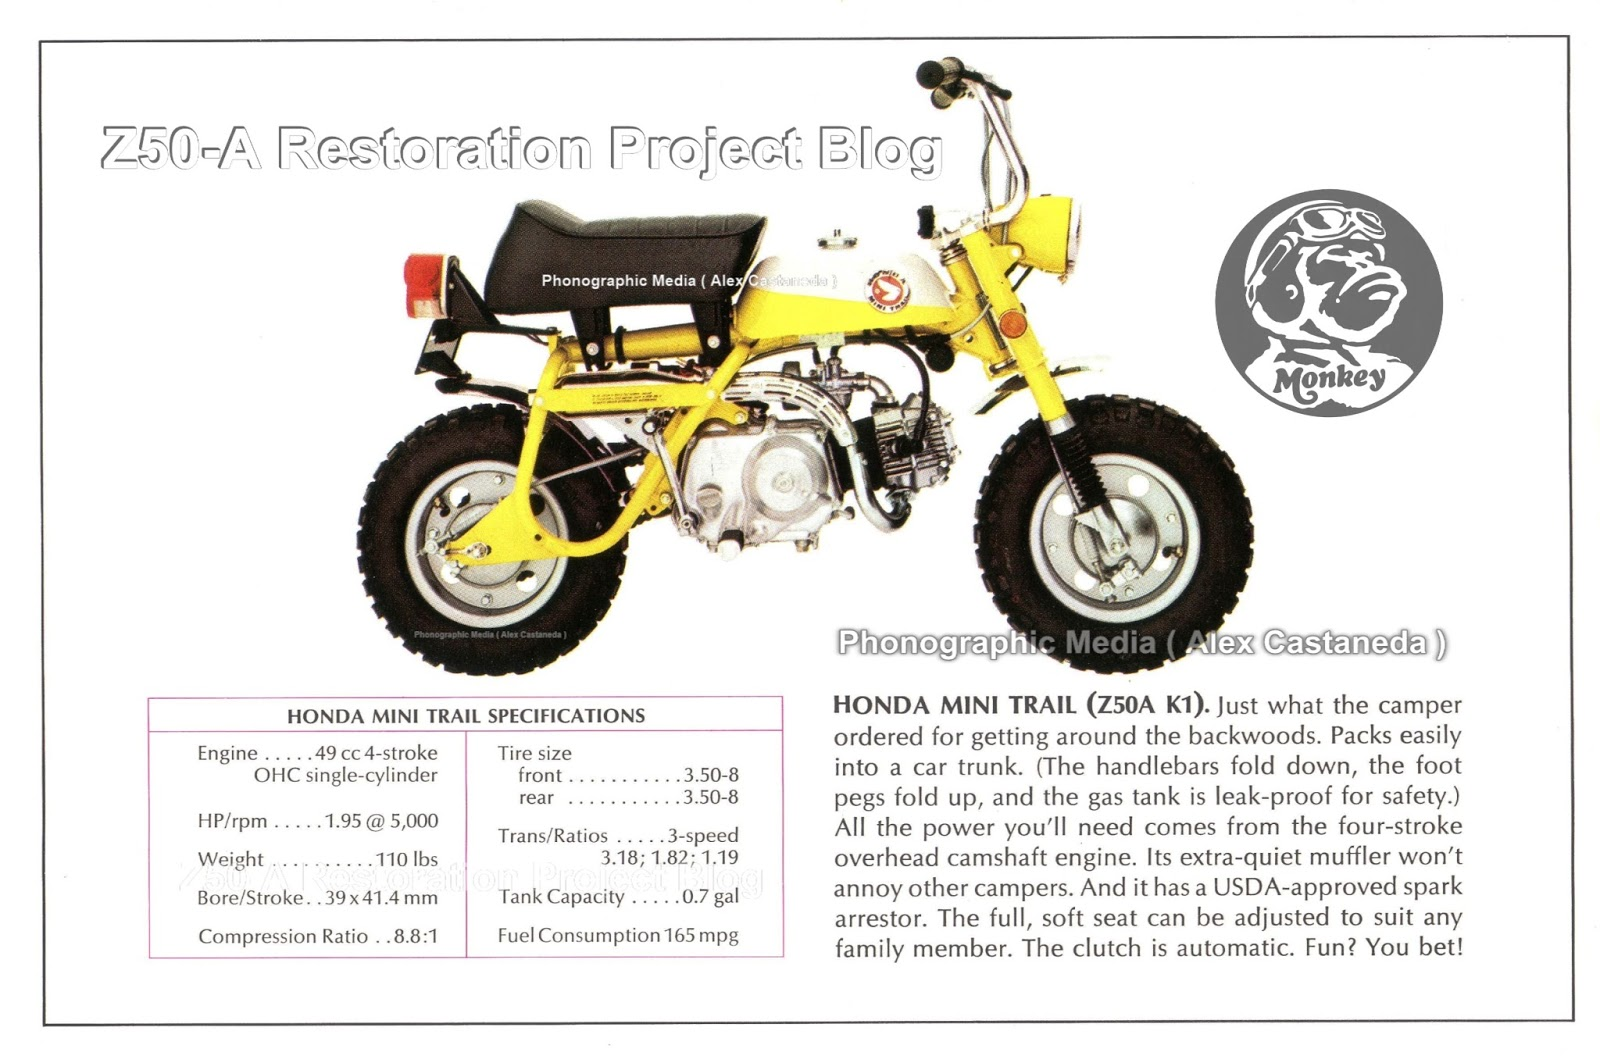 1969 Honda Z50 Parts Diagram Car Wiring Diagrams Explained 1970 Trail 70 Genuine Nos Vintage Mini Monkey Ko Rh Z50a Restoration Project Blogspot Com K1 Catalog